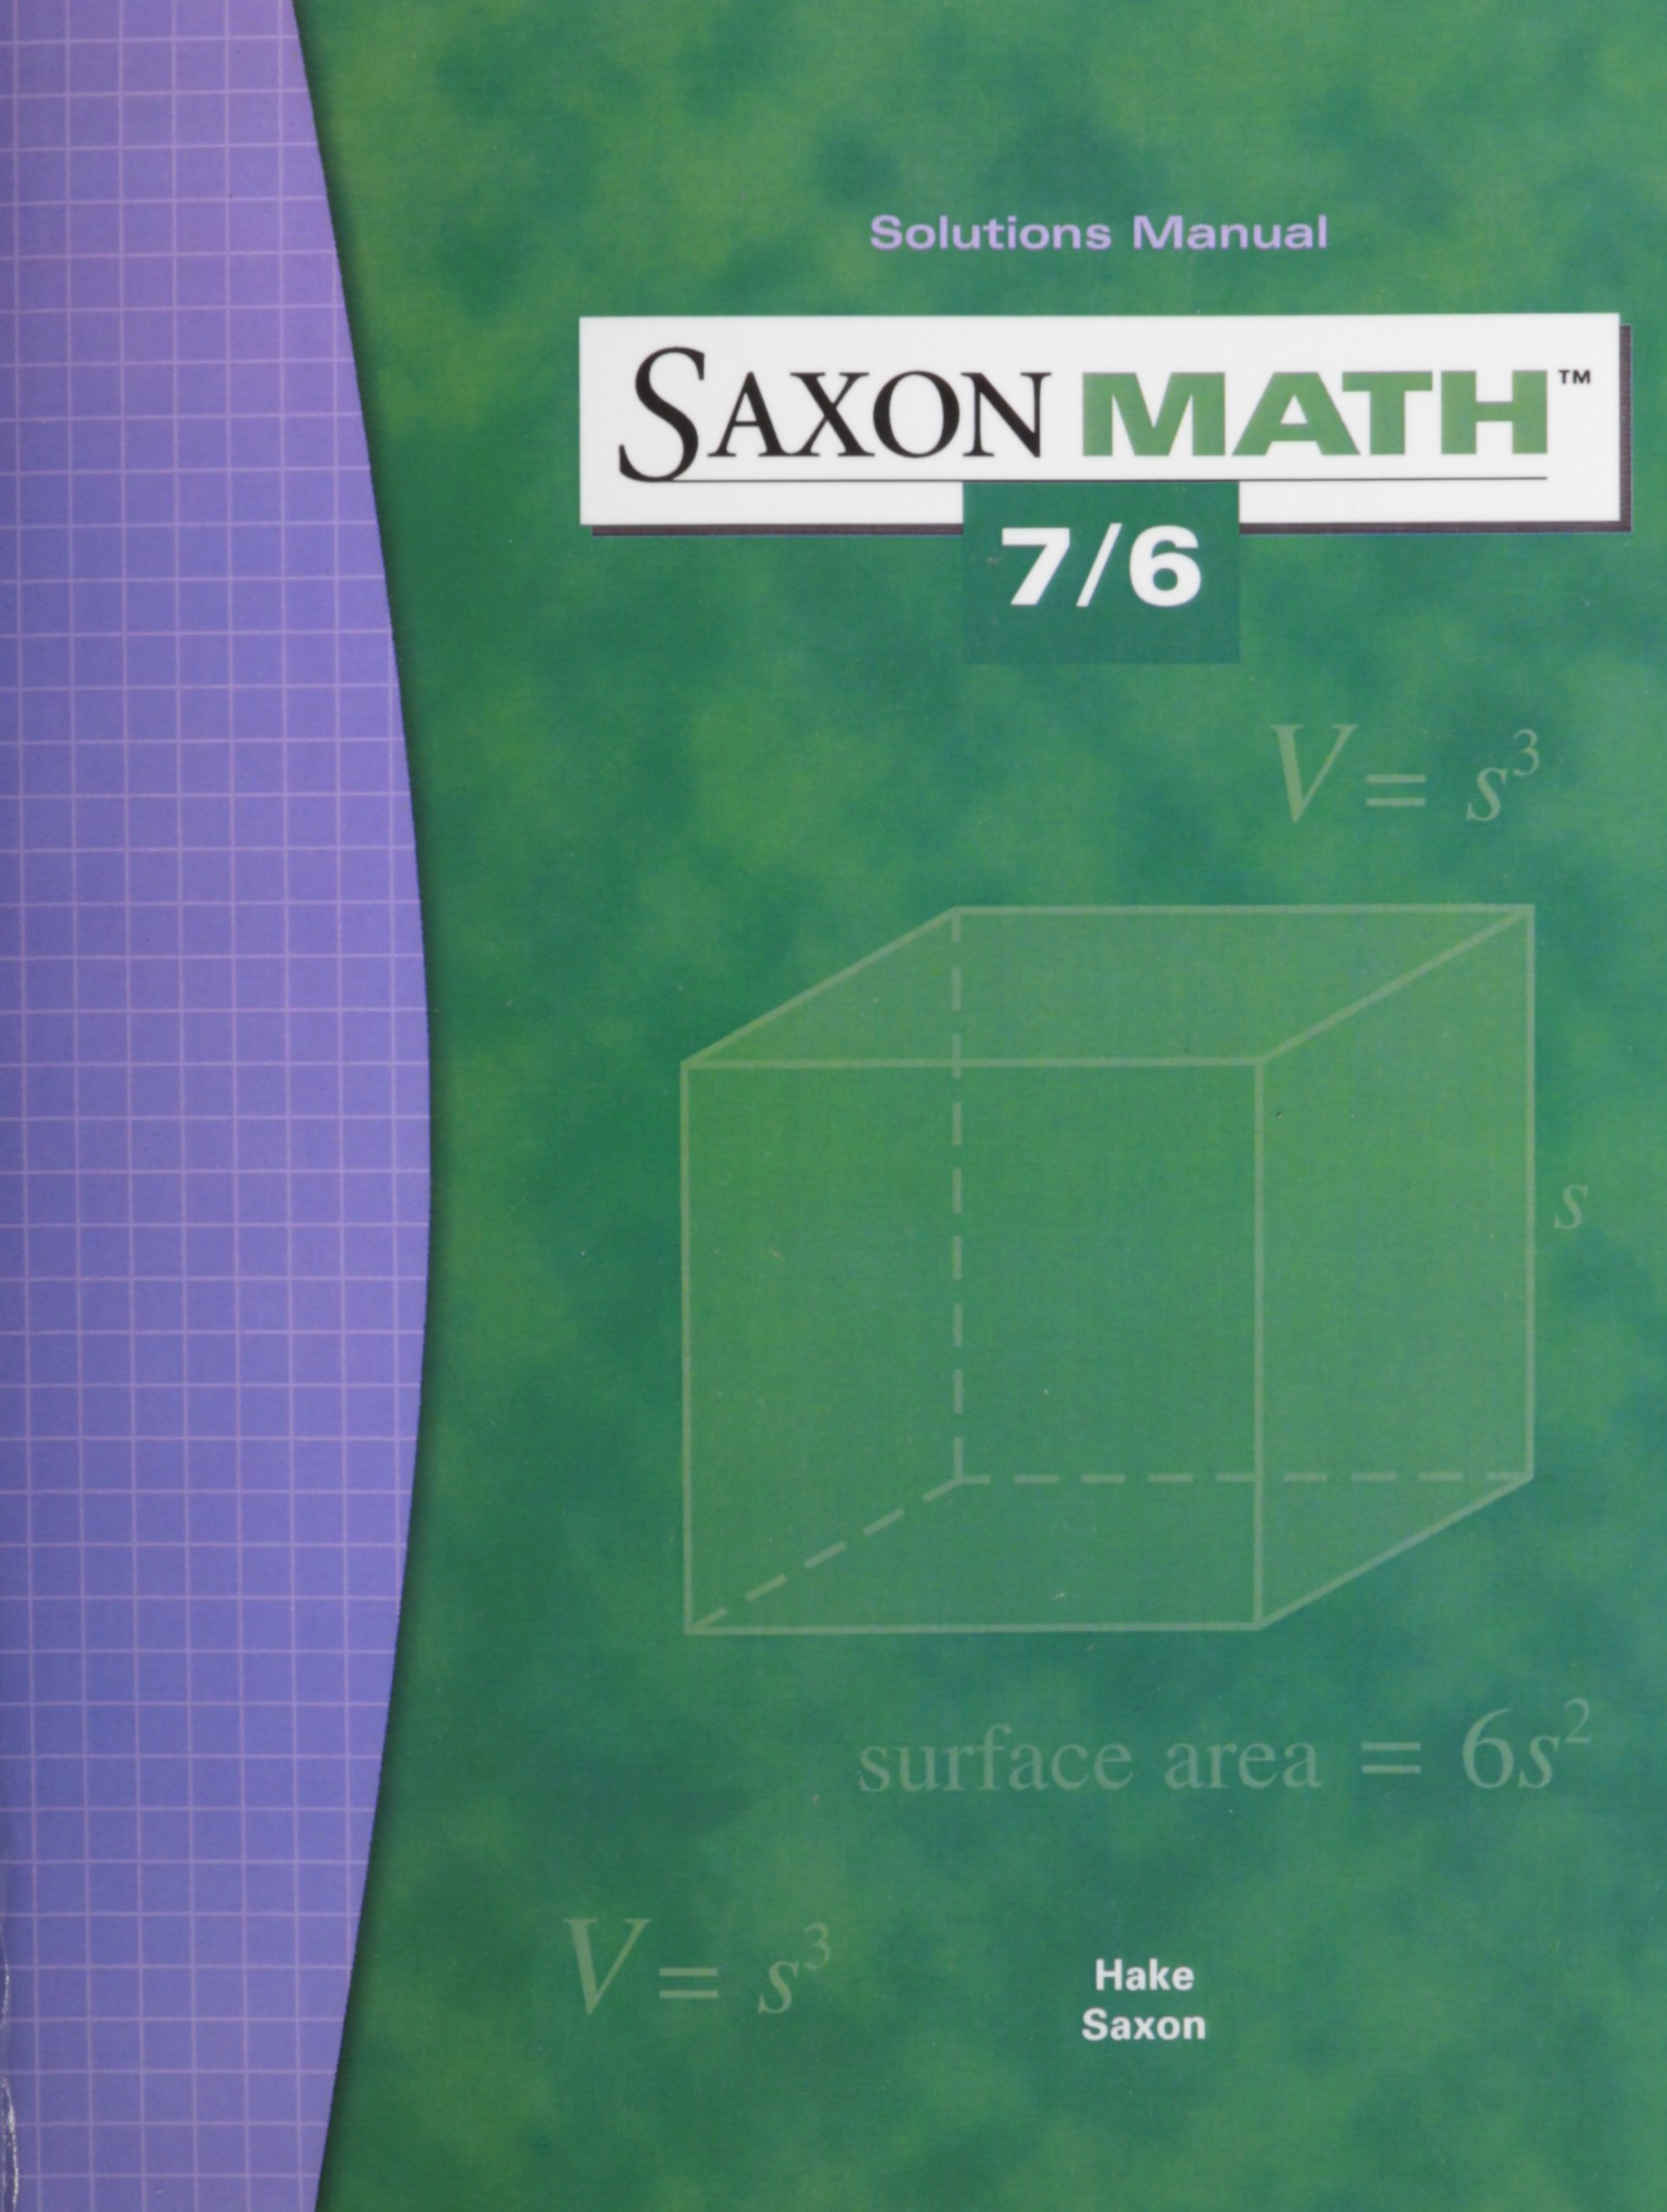 Saxon Math 7/6 Solutions Manual PDF